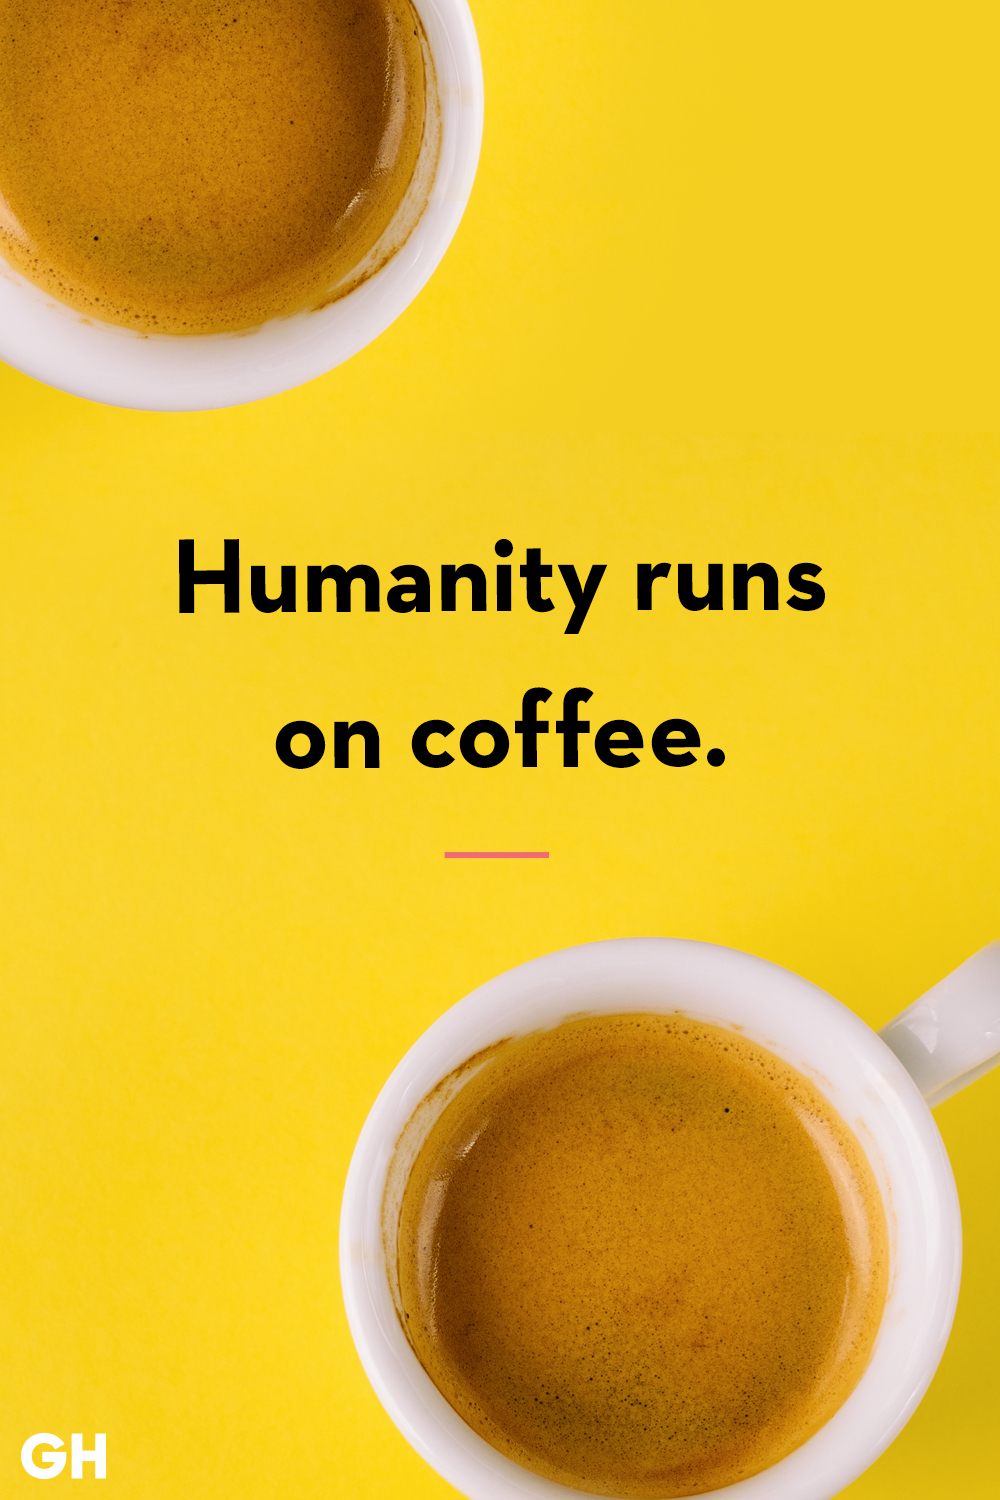 9 Funny Coffee Quotes - Best Coffee Quotes and Sayings